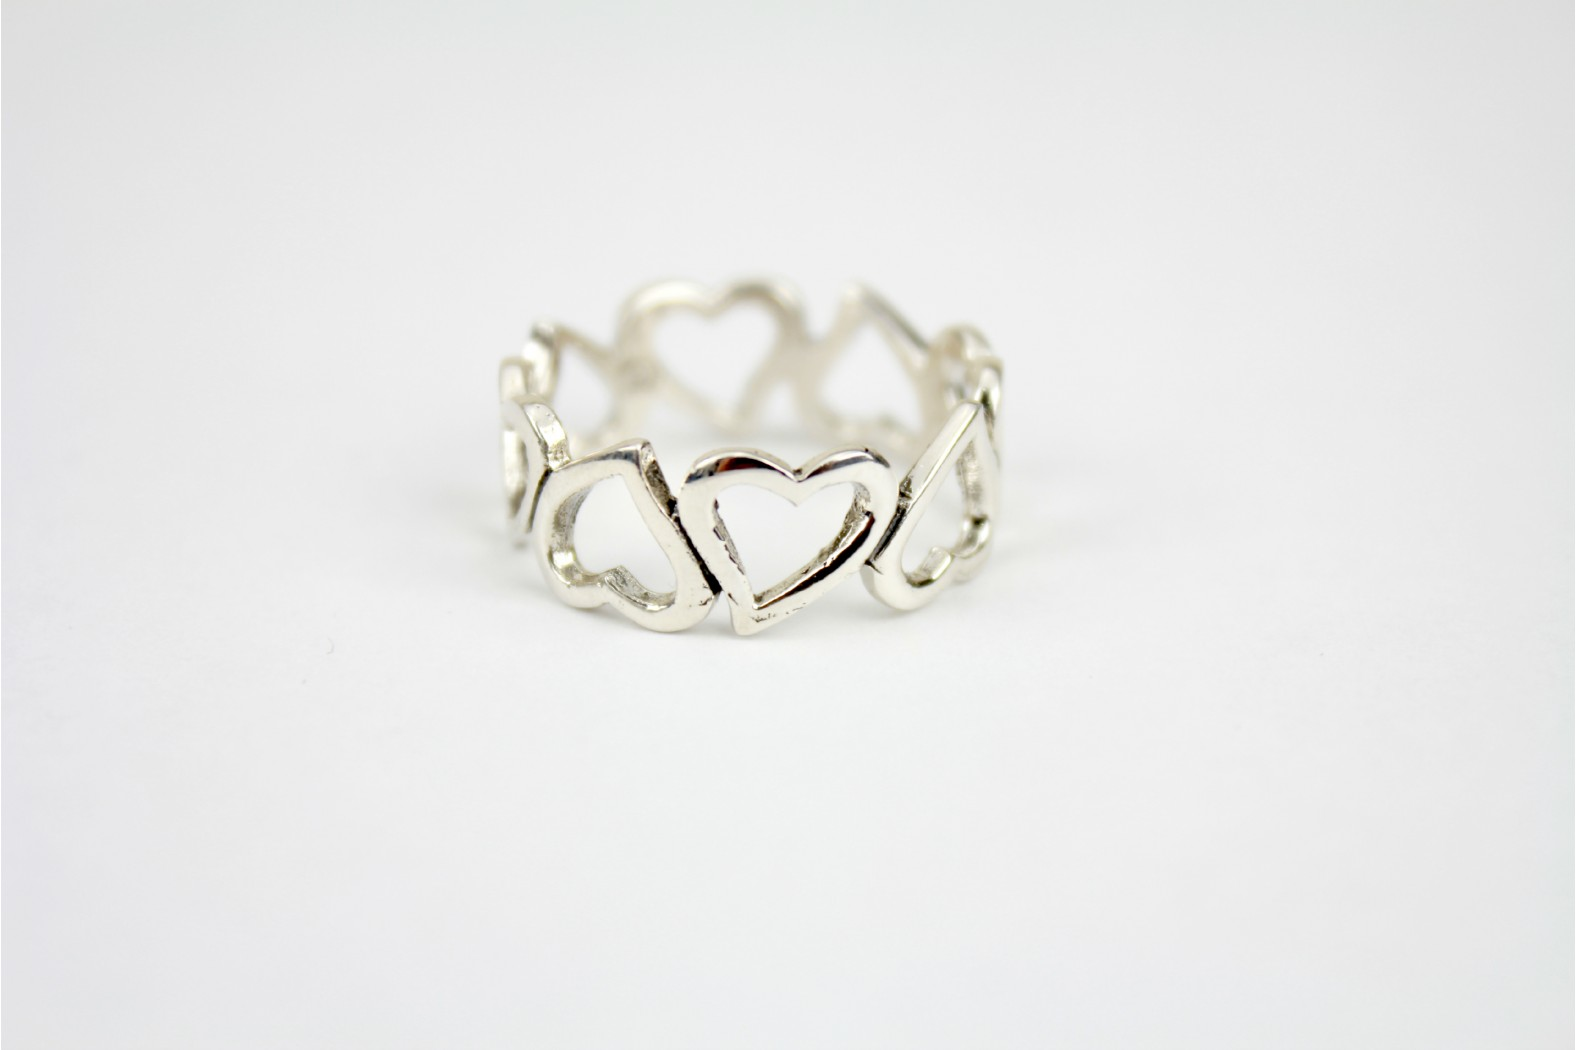 Beautiful contemporary design large open heart size 8 or P DELIVERY 10 WORKING DAYS